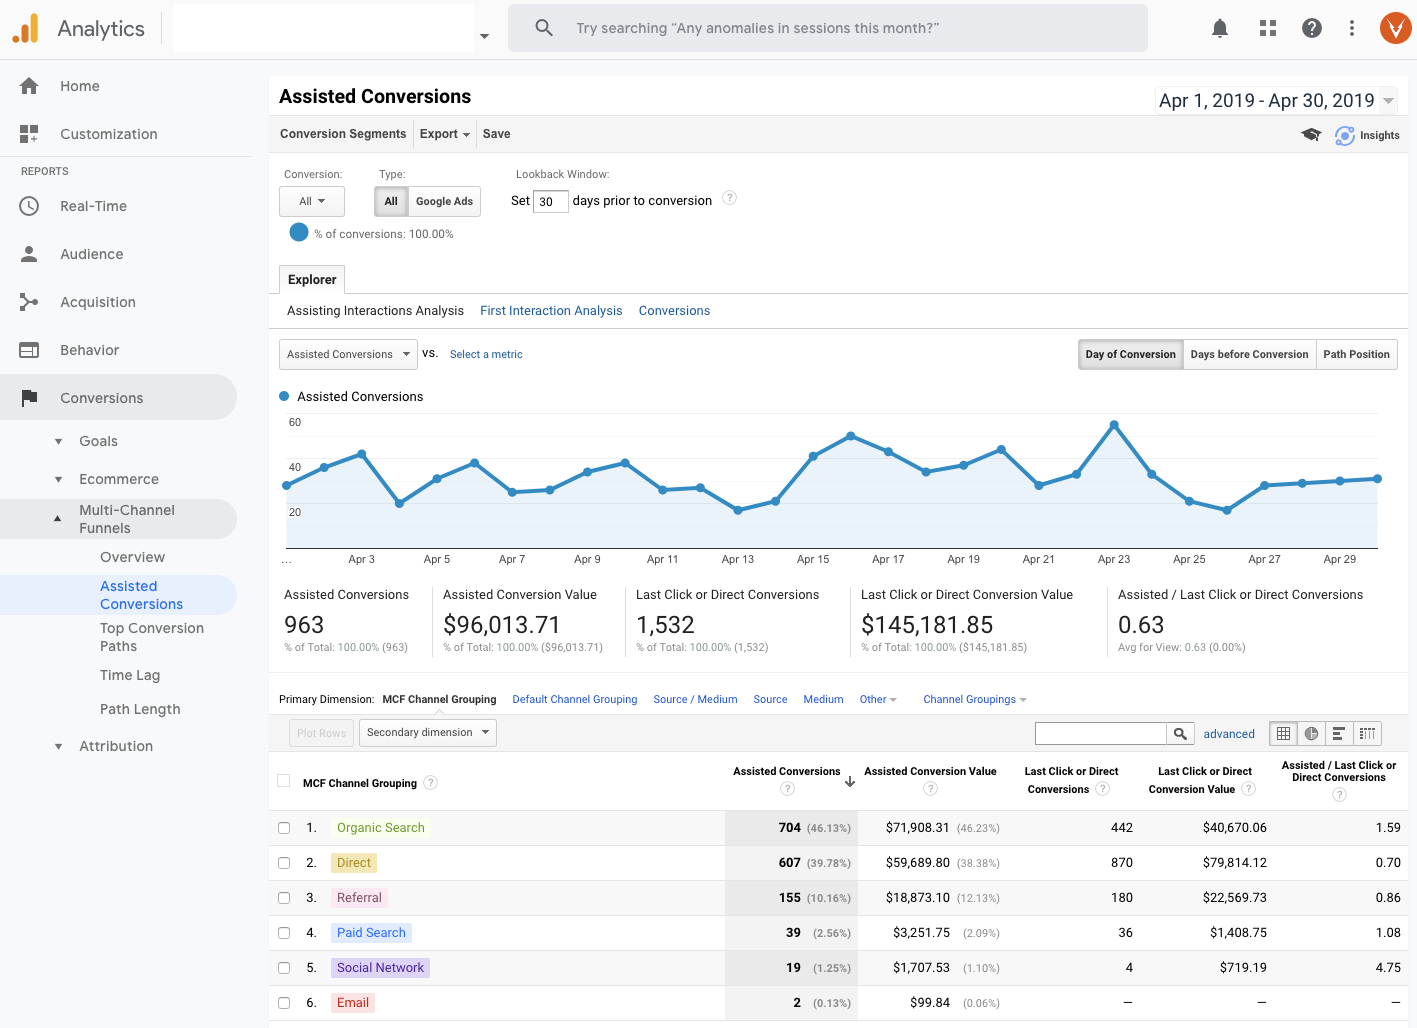 Multi-channel funnels assisted conversions